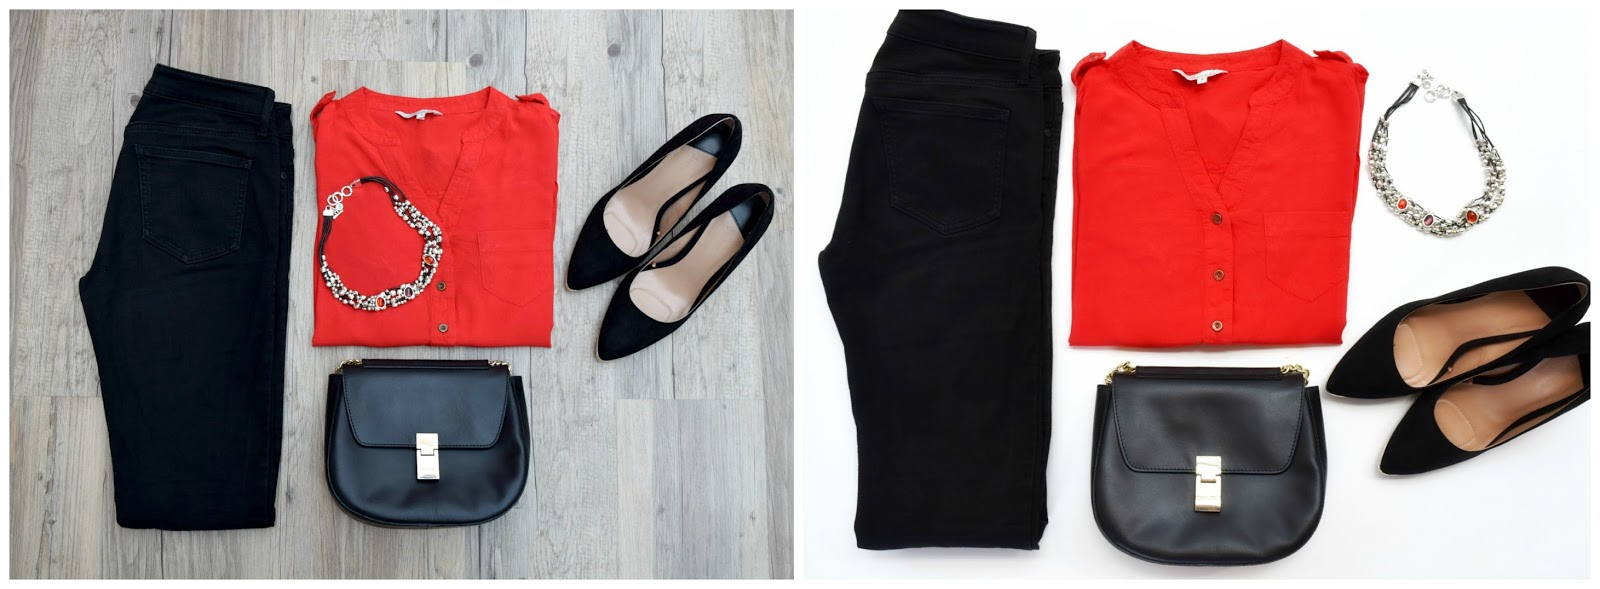 different backgrounds for fashion images flatlay